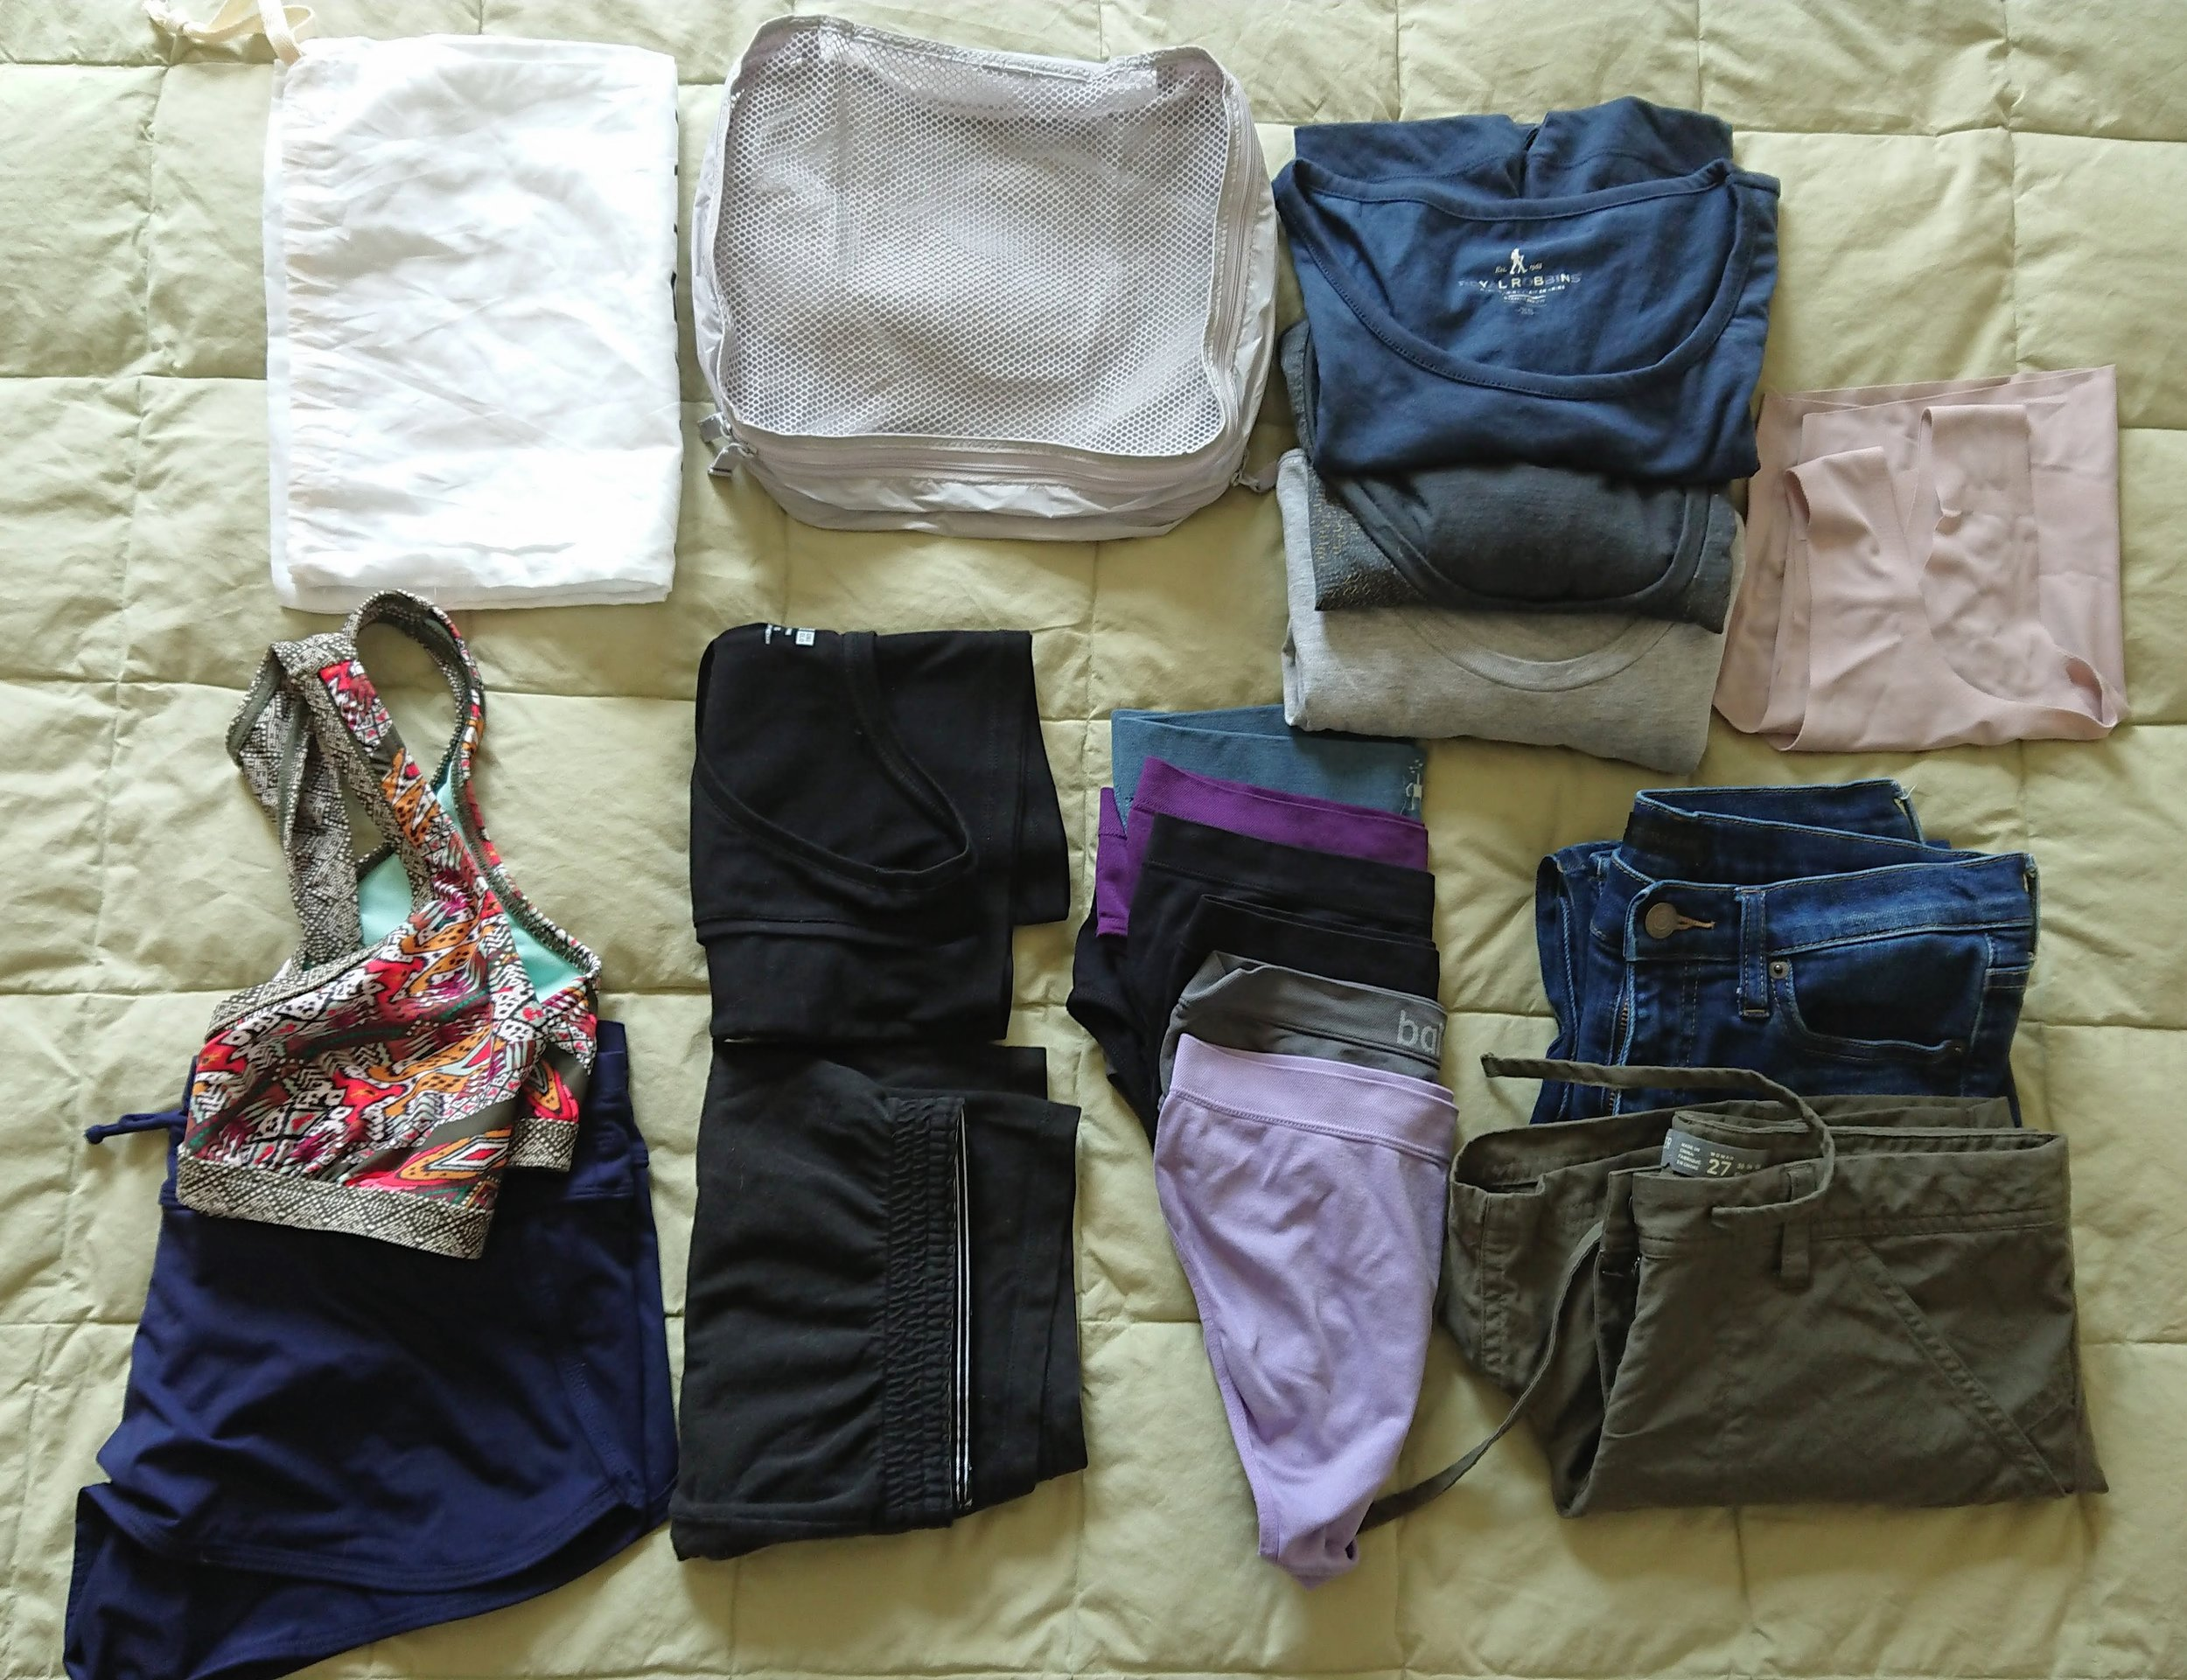 Top: small laundry bag, small Muji packing cube, 3 t shirts, 1 True Body bra Bottom: swim top and bottom, pajama tank and shorts, 6 pairs underwear, 1 pair Uniqlo cigarette jeans, 1 pair Icebreaker shorts